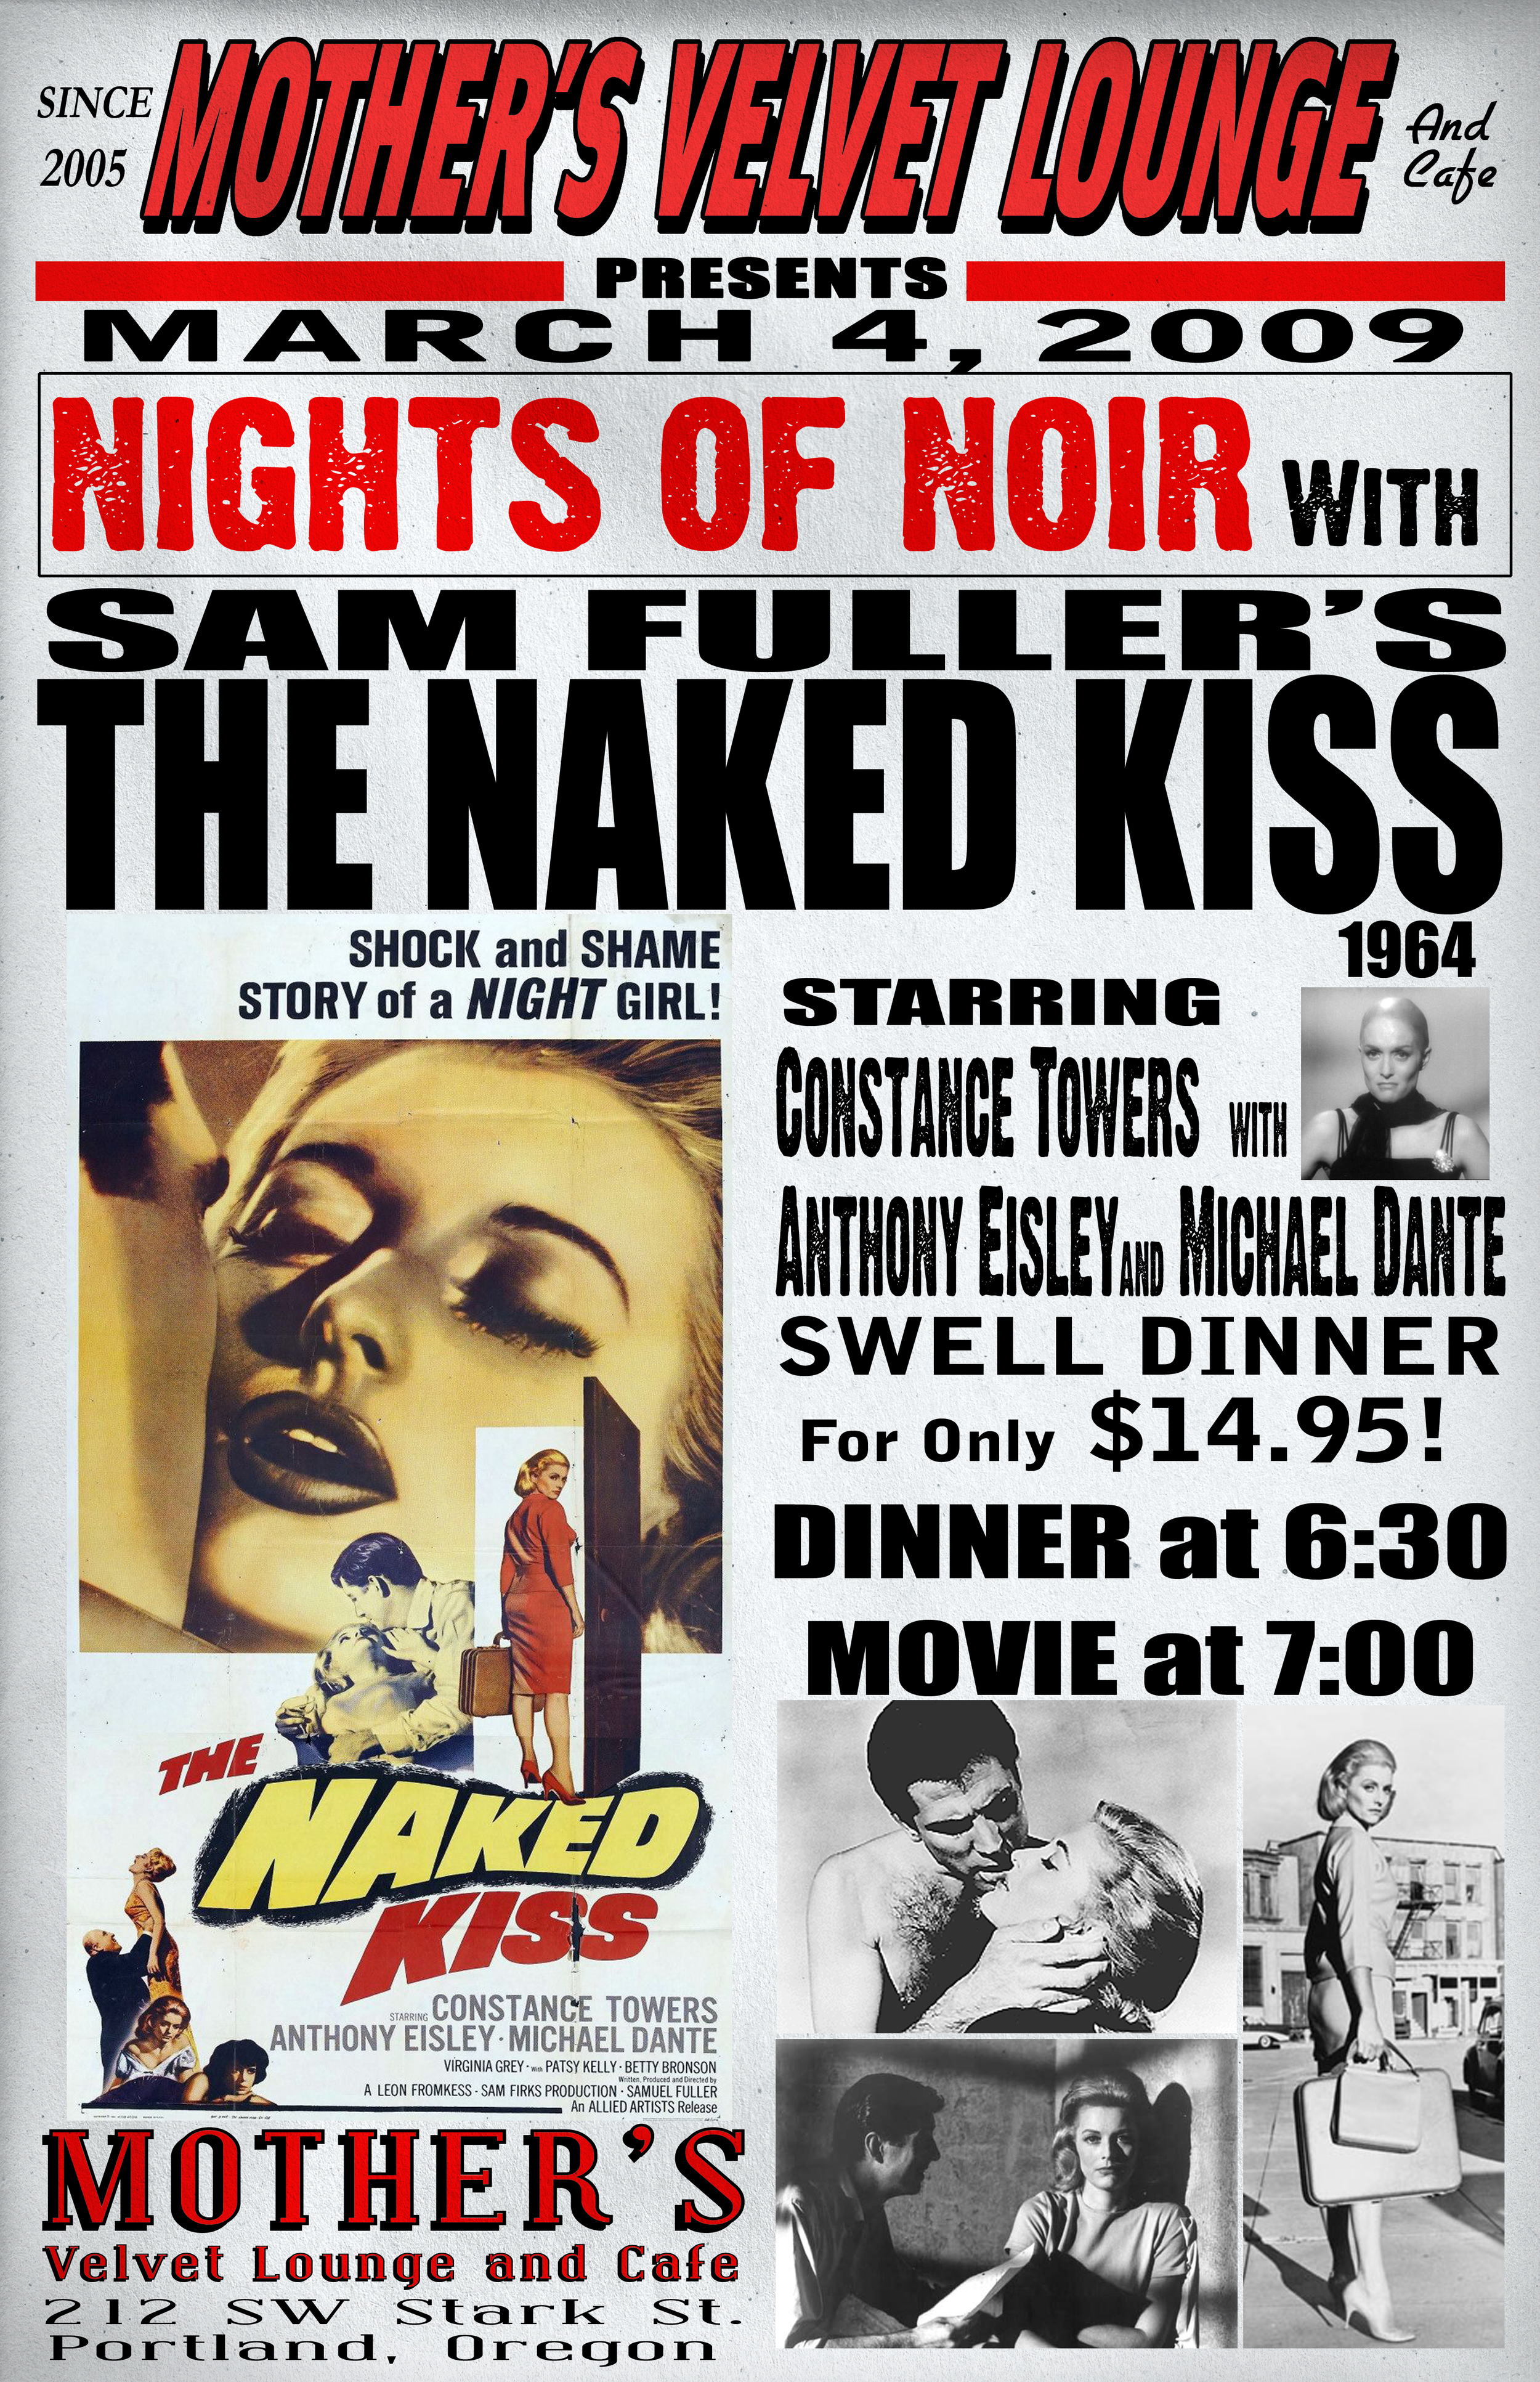 The Naked Kiss   (1964)  Samuel Fuller